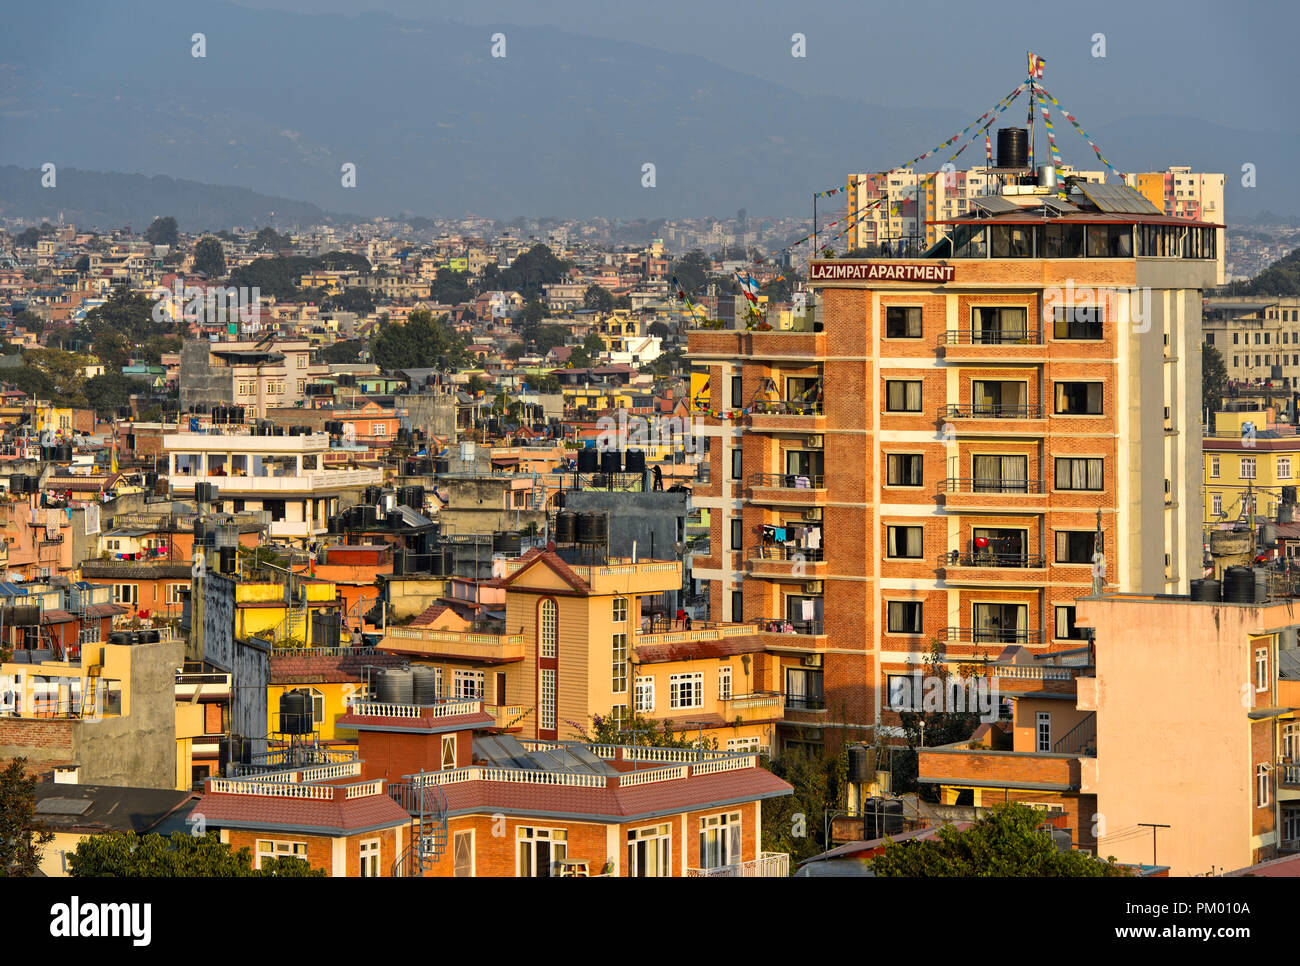 View on the densely populated residential area Lazimpat, Kathmandu, Nepal - Stock Image